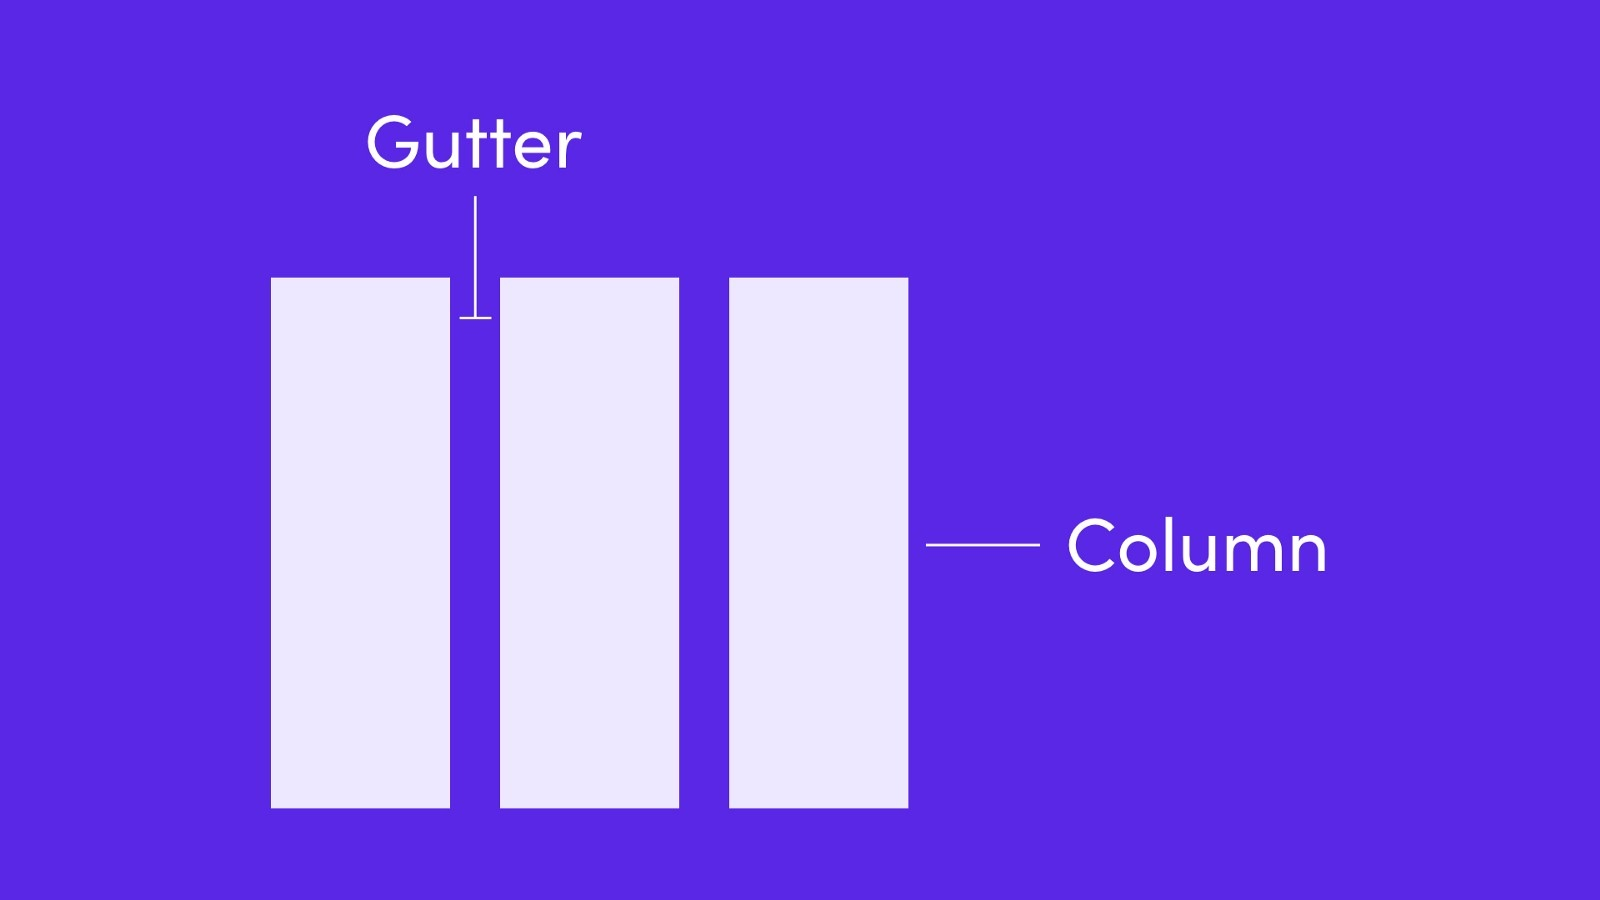 Gutters are the space between columns